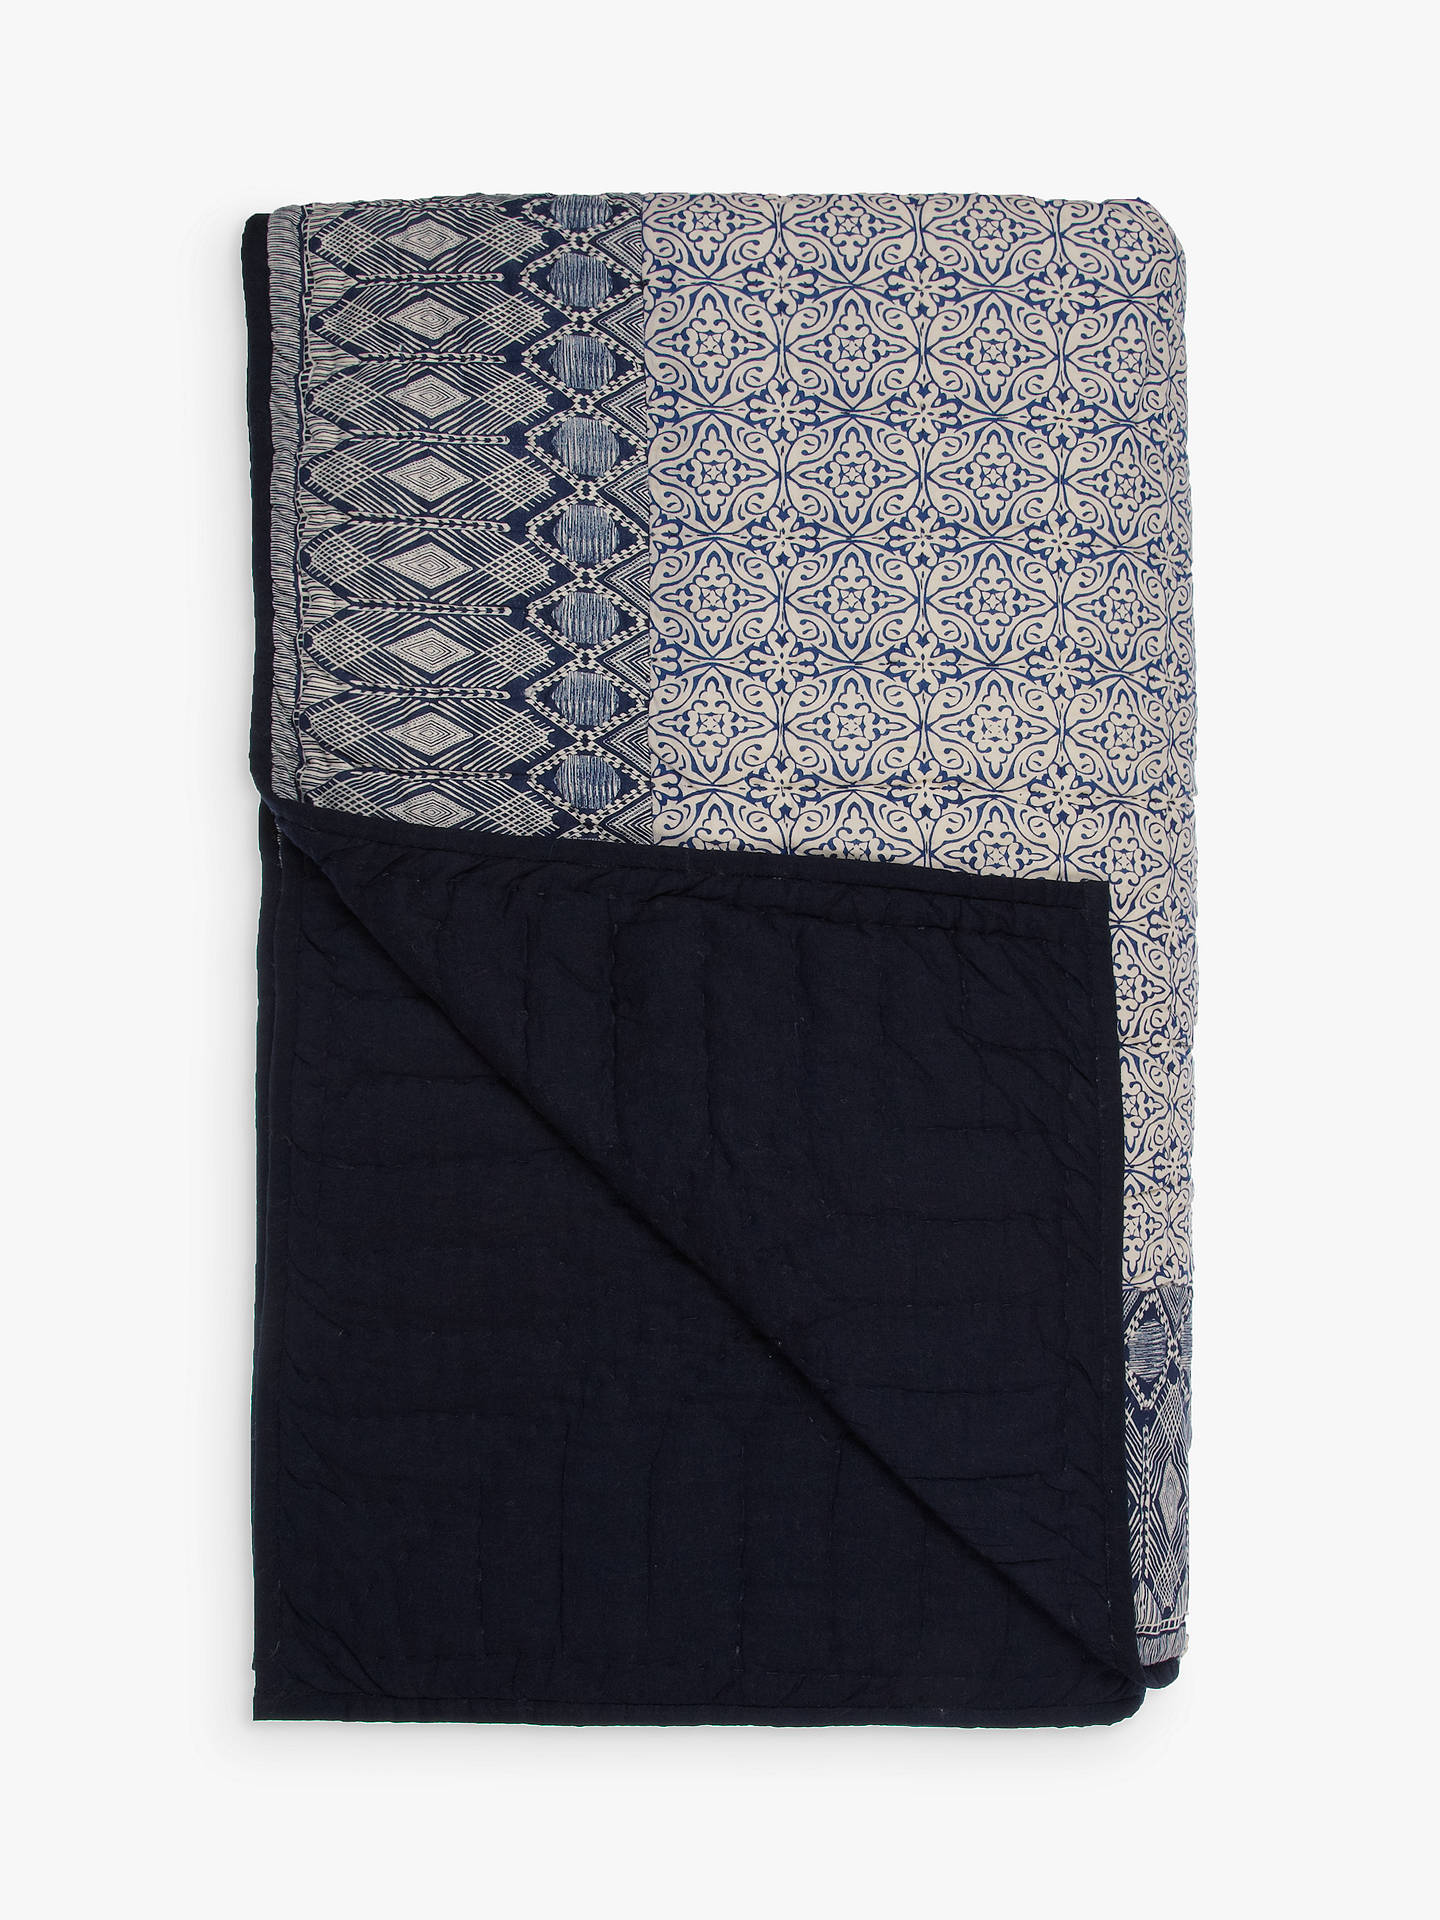 BuyJohn Lewis & Partners Aztec Patch Bedspread Online at johnlewis.com